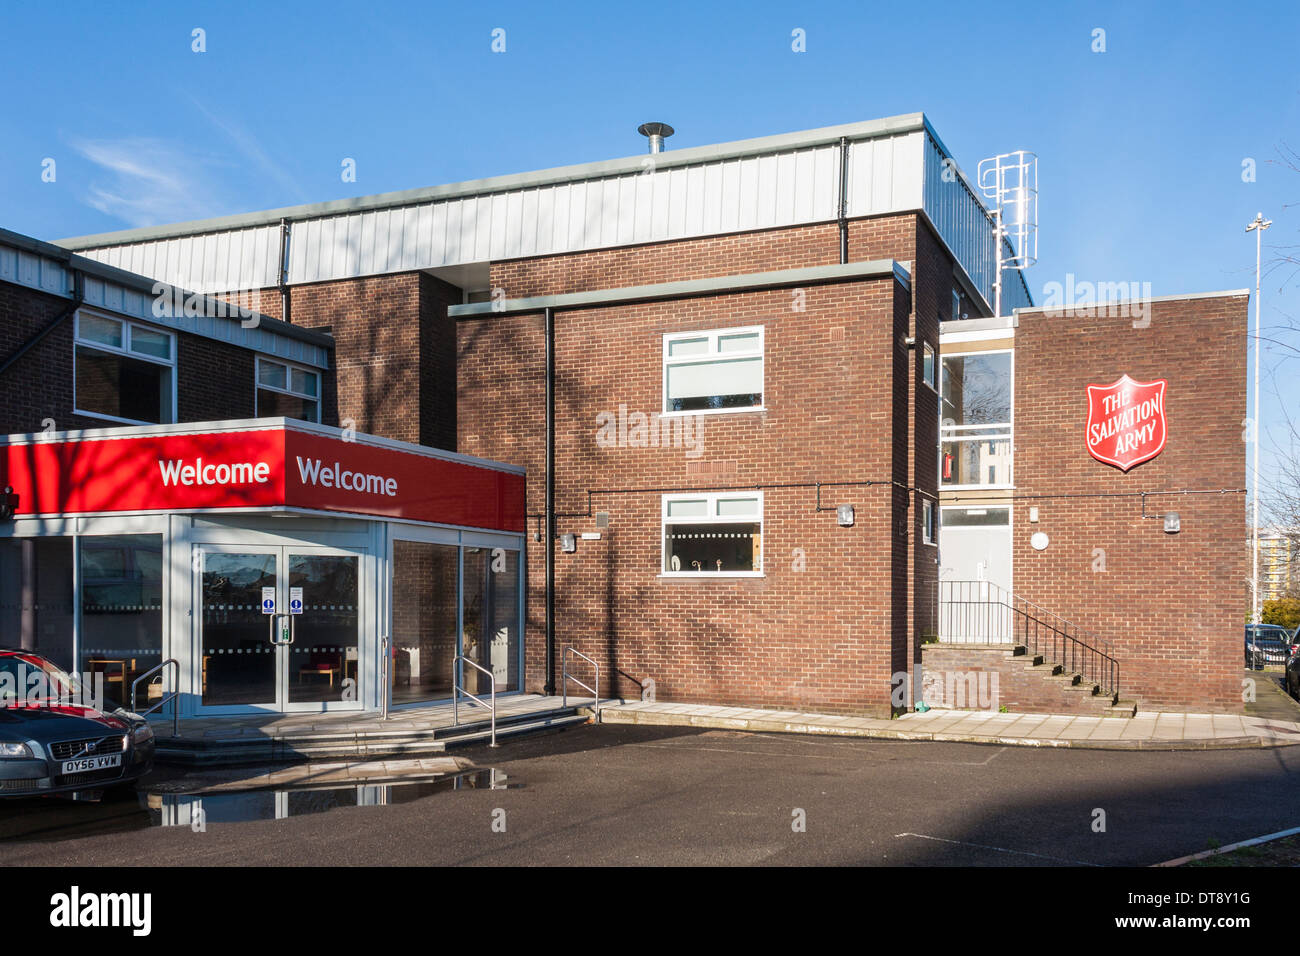 Salvation Army church and community centre, Reading, Berkshire, England, GB, UK. - Stock Image